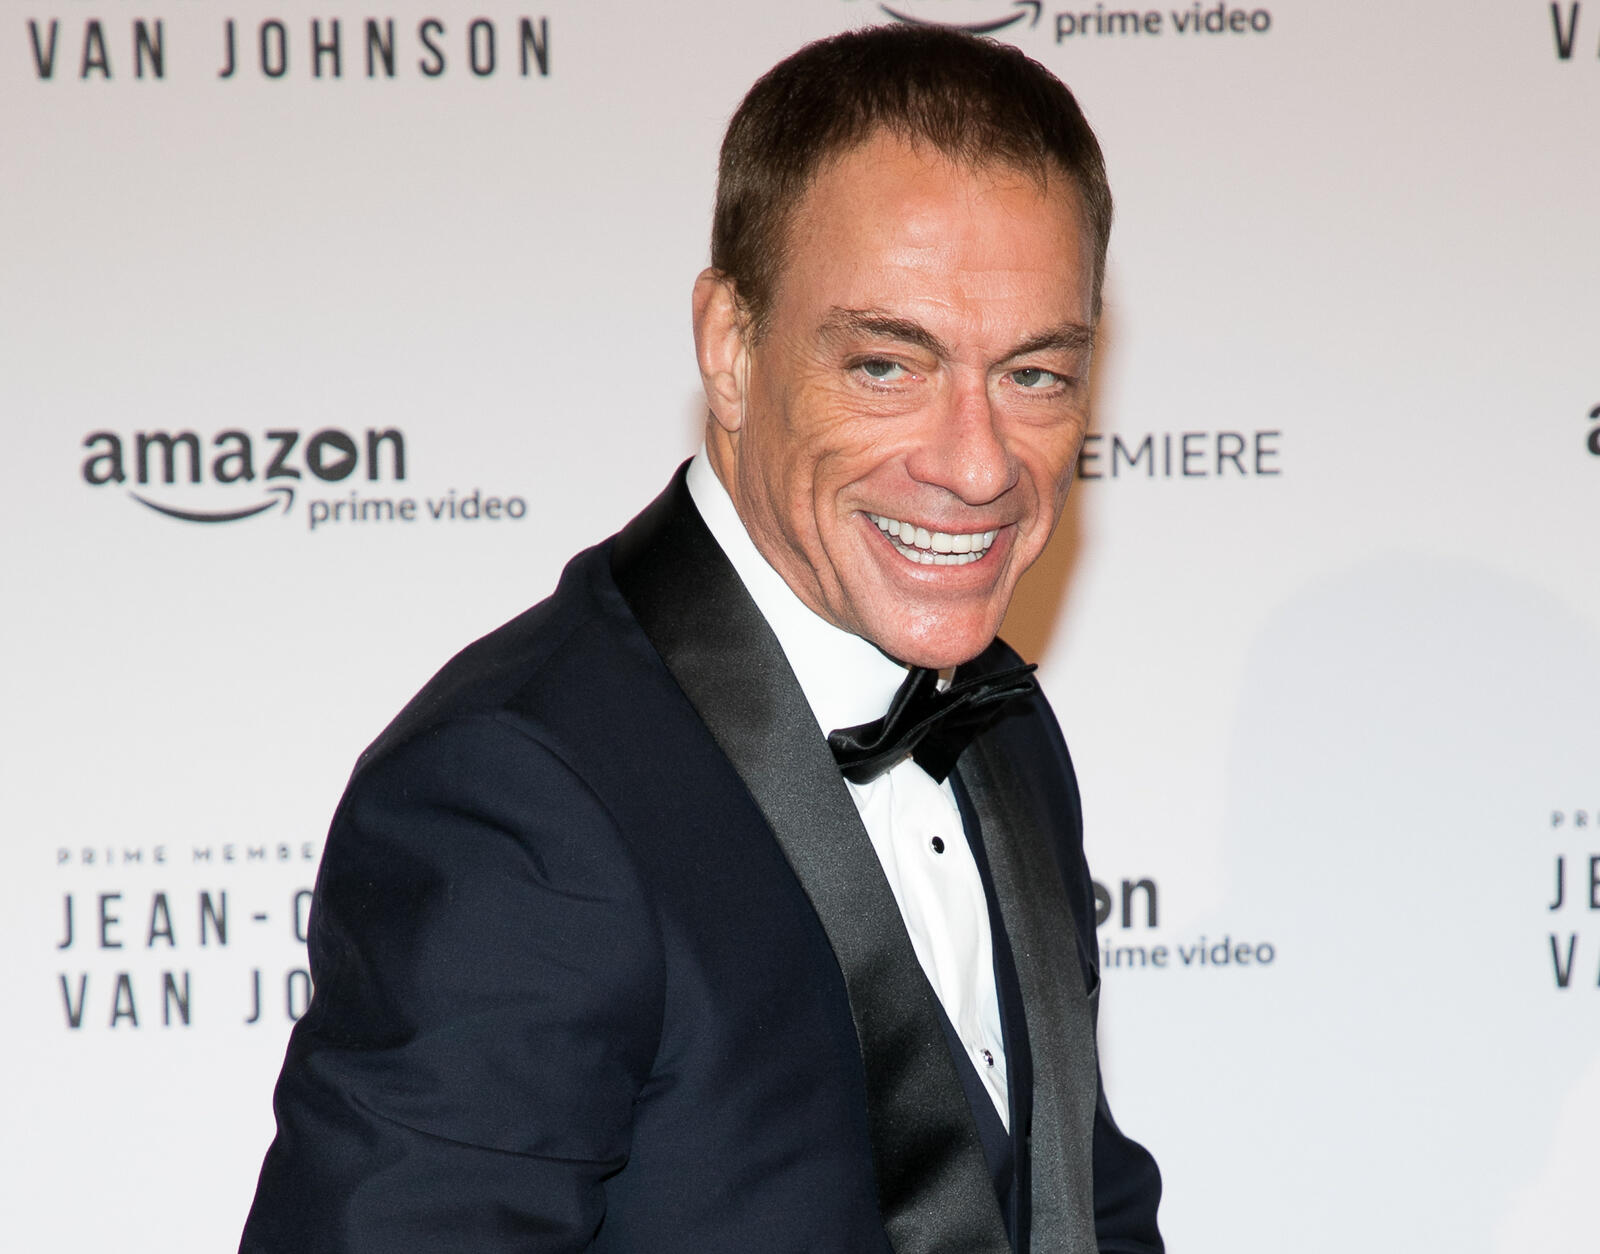 240: 07/30/21 - Jean-Claude Van Damme's Distraction Allowed A JewelryThief to Escape WithMillion s in Jewels in Paris